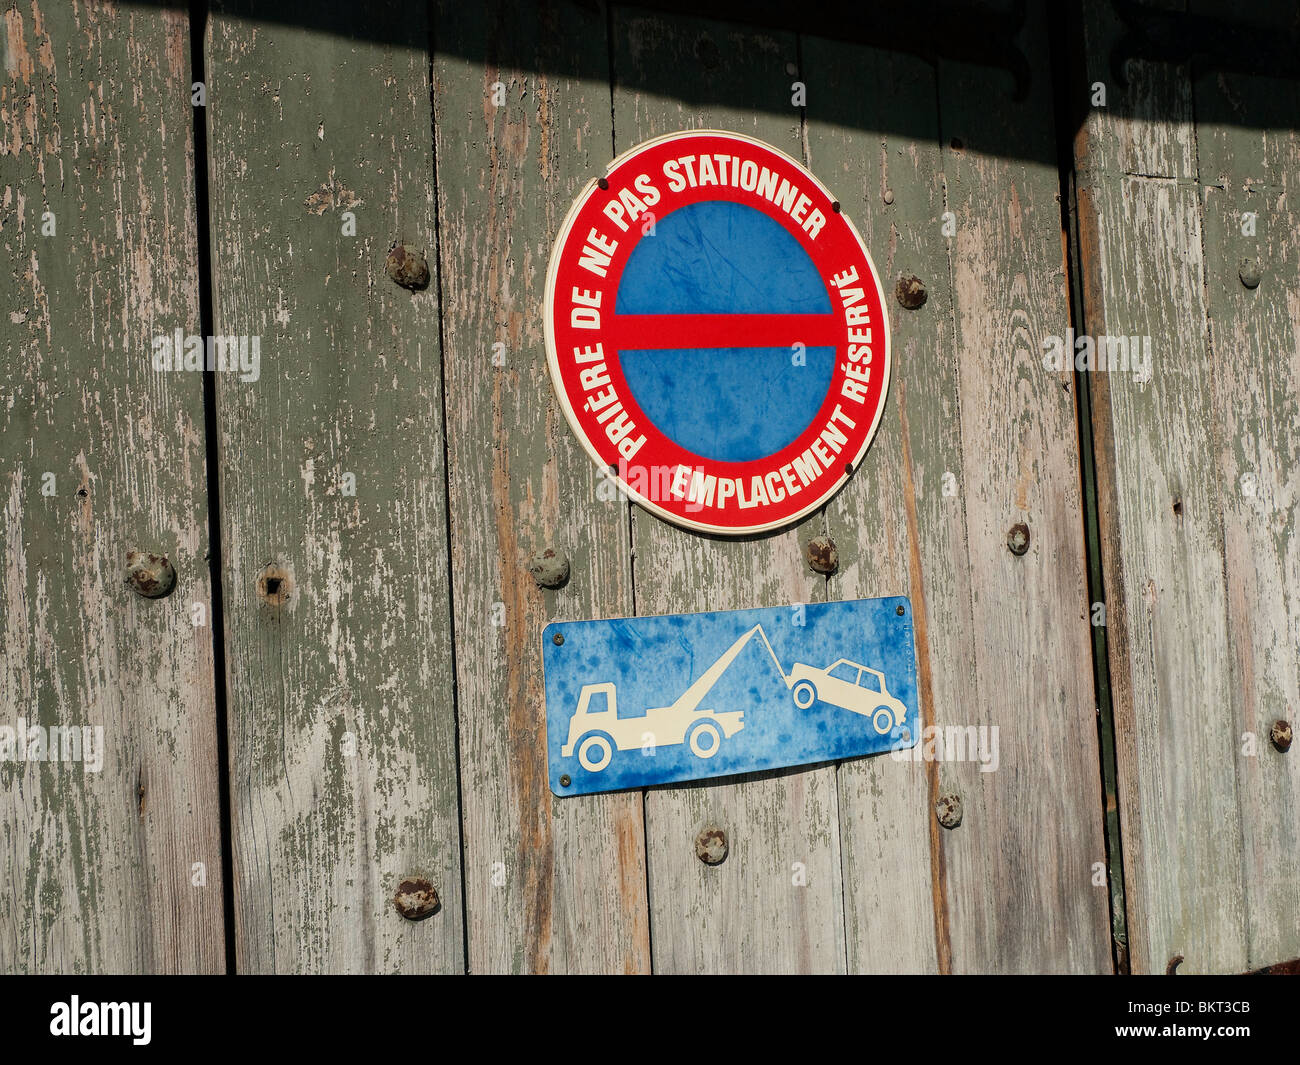 No Parking sign et signe-remorquage sur la vieille porte en bois. Photo Stock